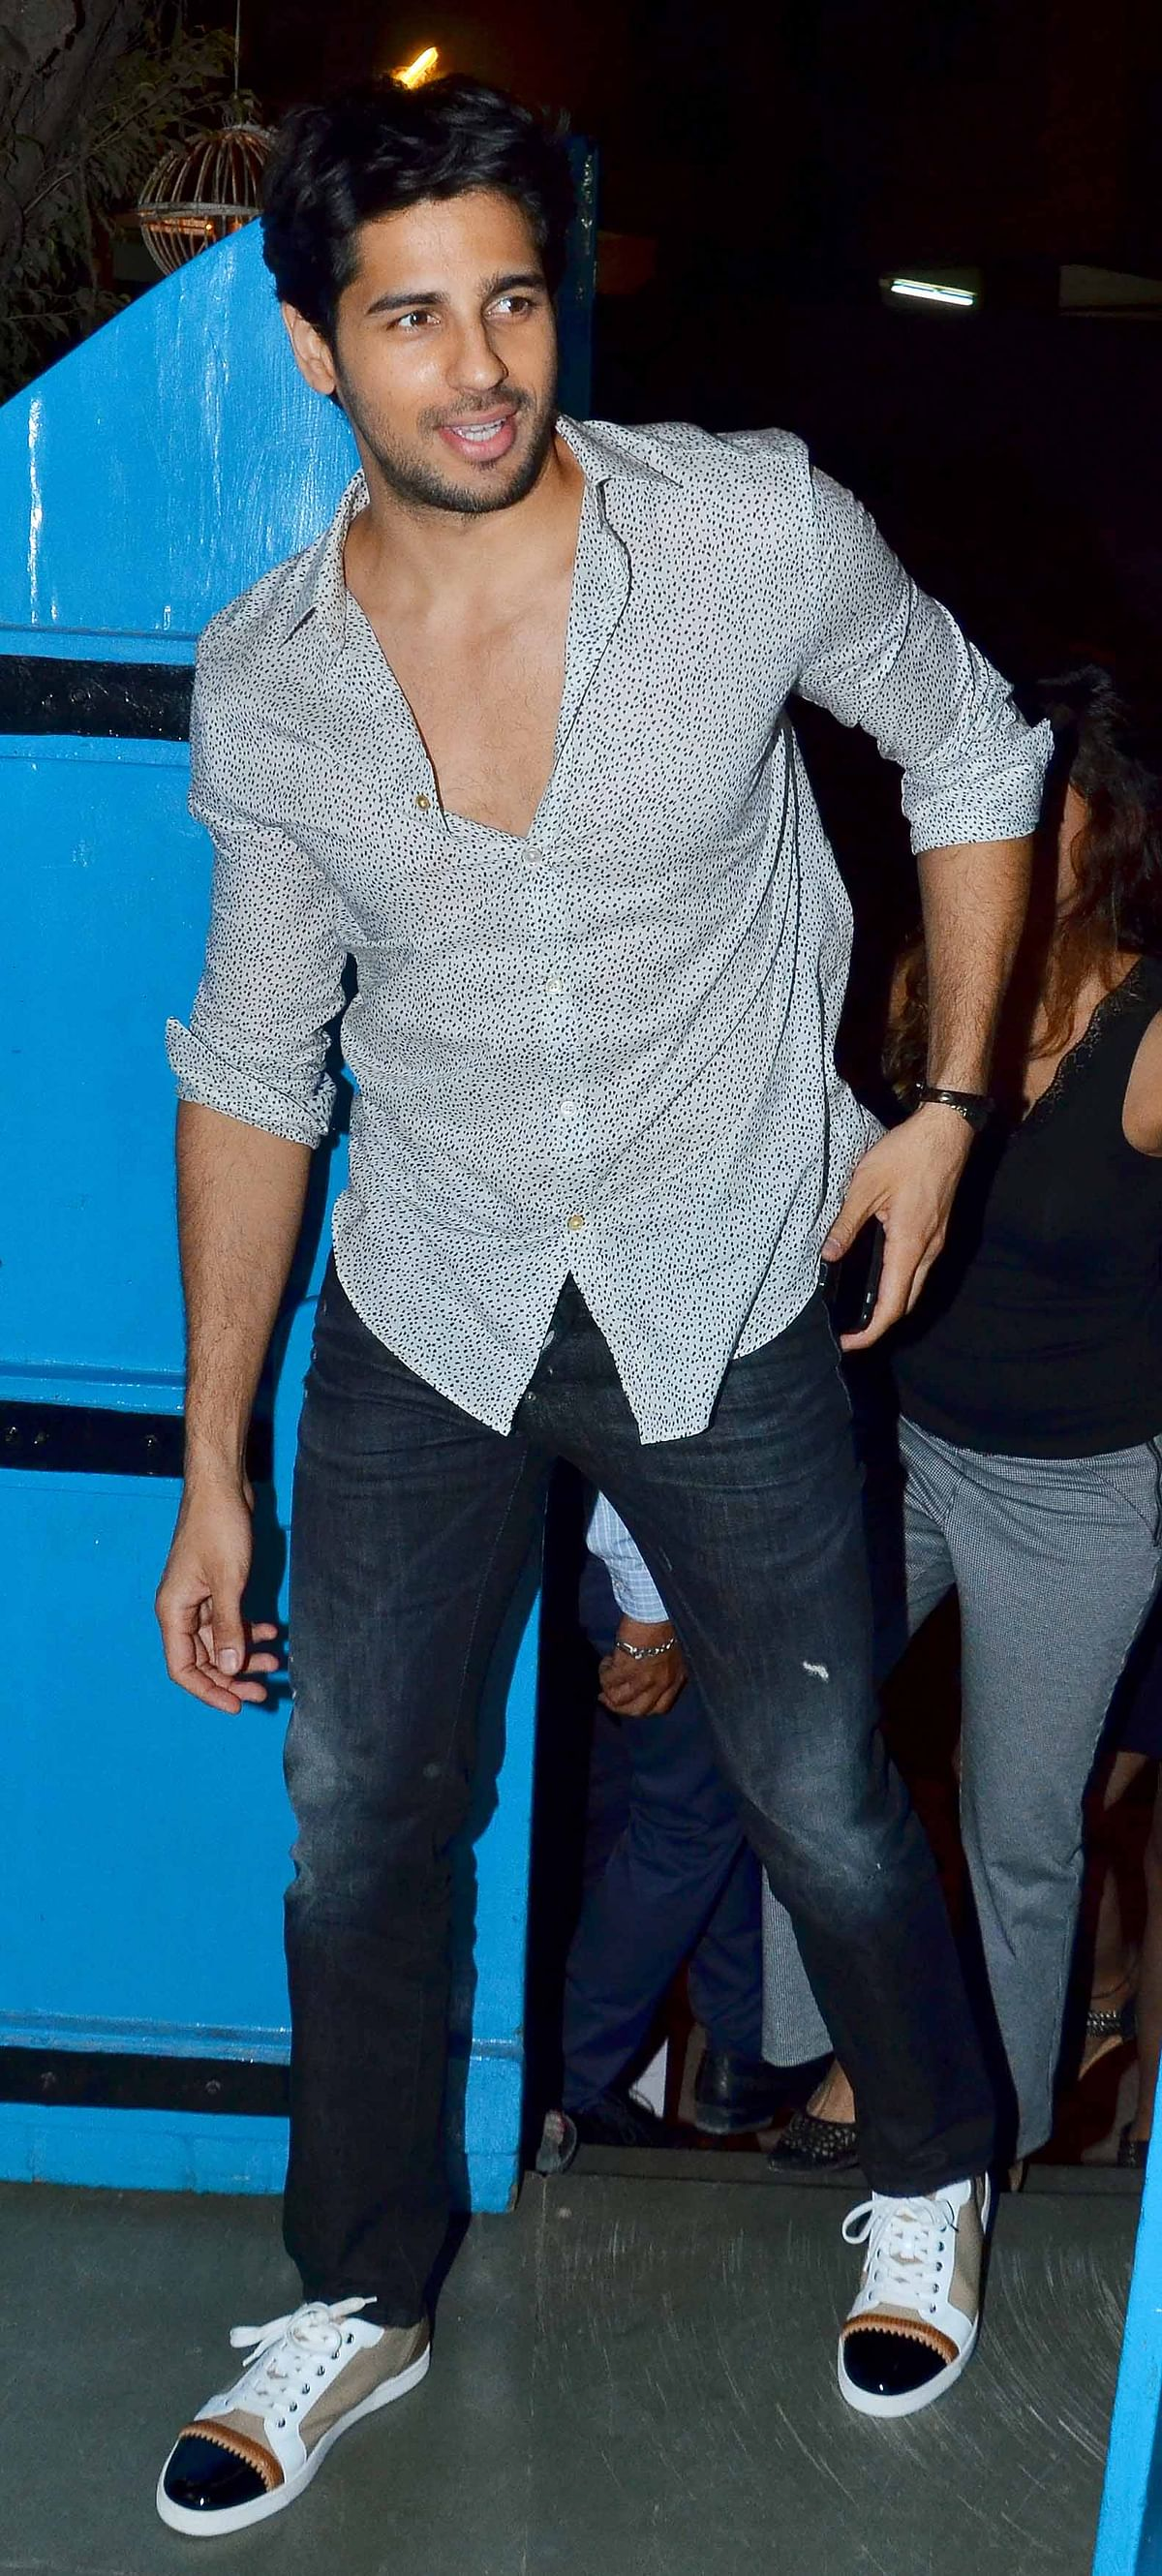 Sidharth Malhotra steps out for the shutter bugs (Photo: Yogen Shah)